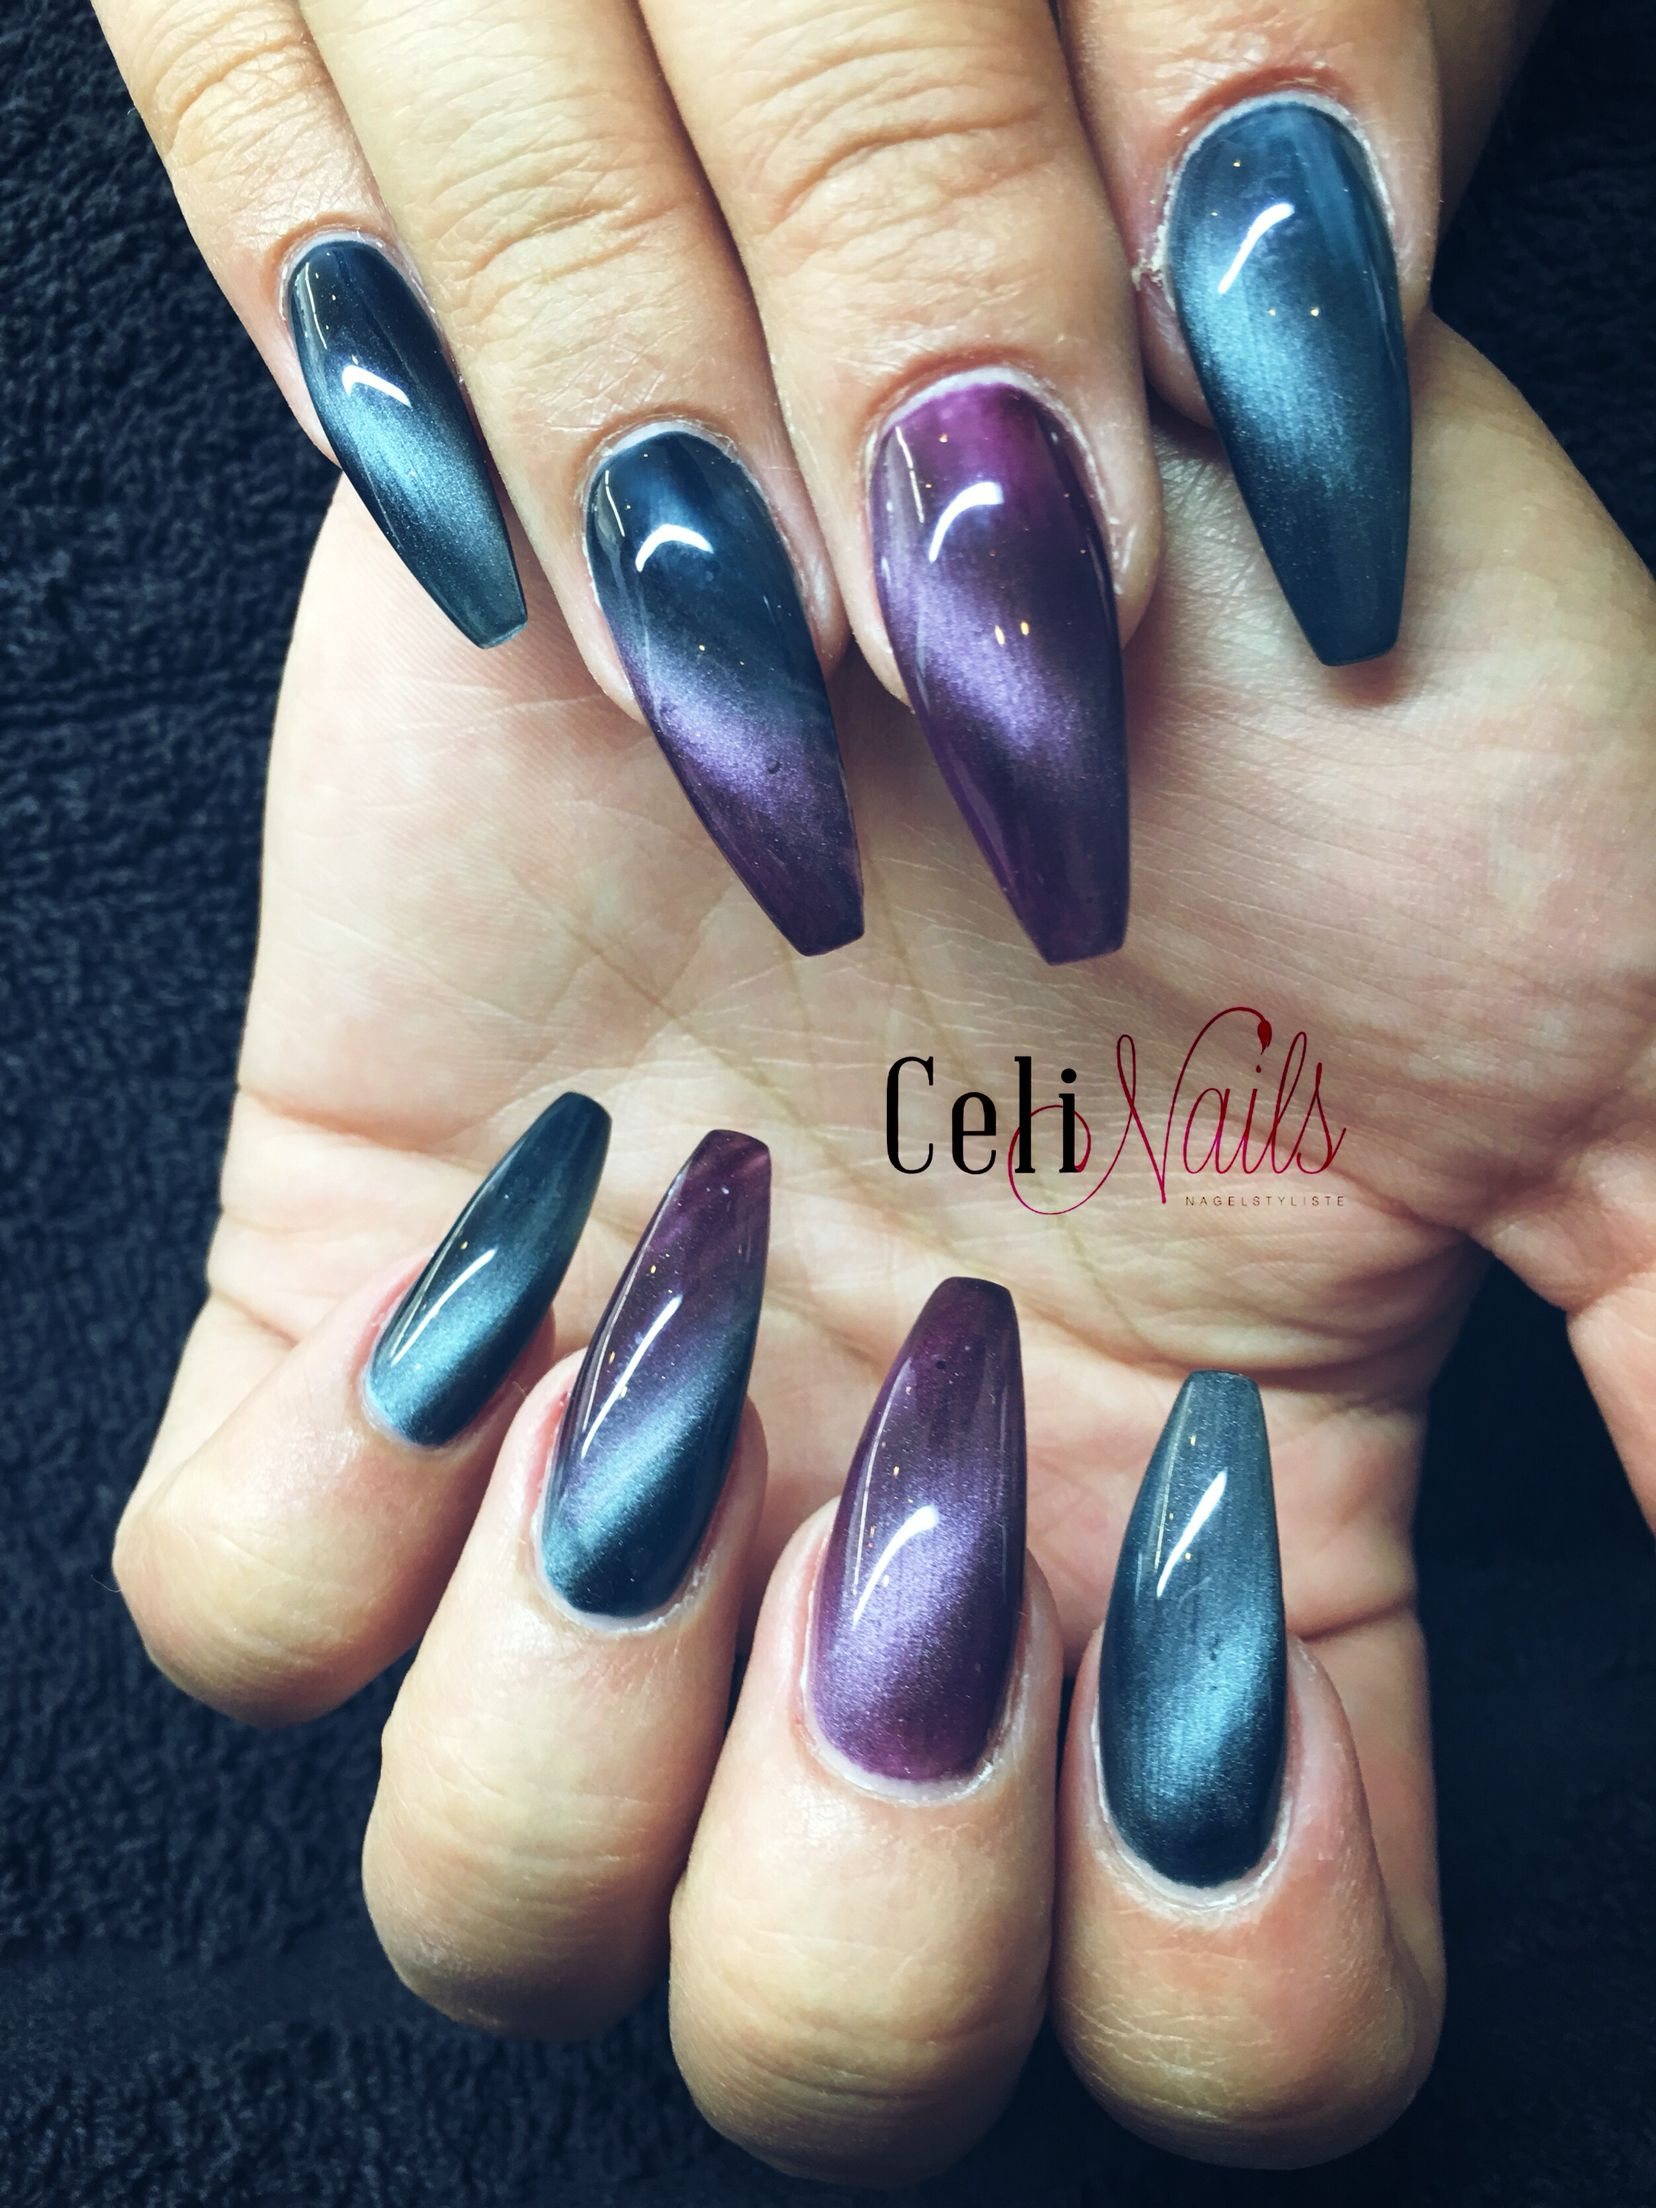 Purple cateye nails | Nail design | Pinterest | Ombre, Nail nail and ...